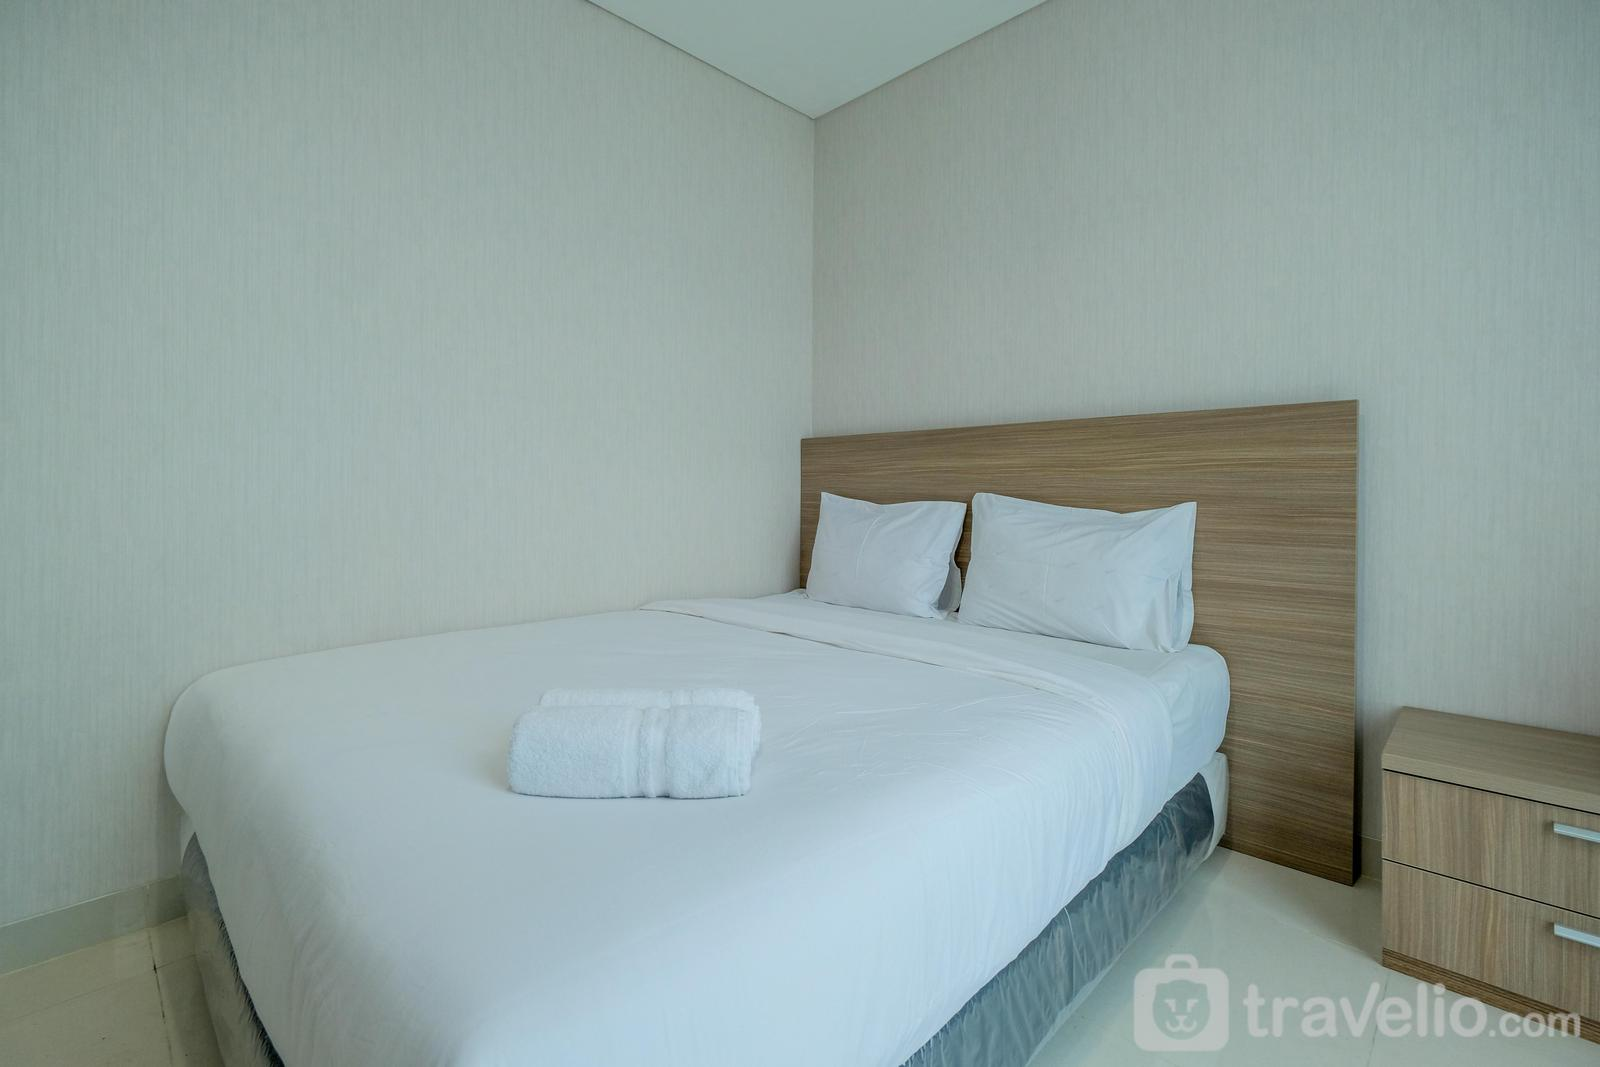 Brooklyn Apartment Alam Sutera - Modern Brooklyn Studio Apartment near IKEA Alam Sutera By Travelio